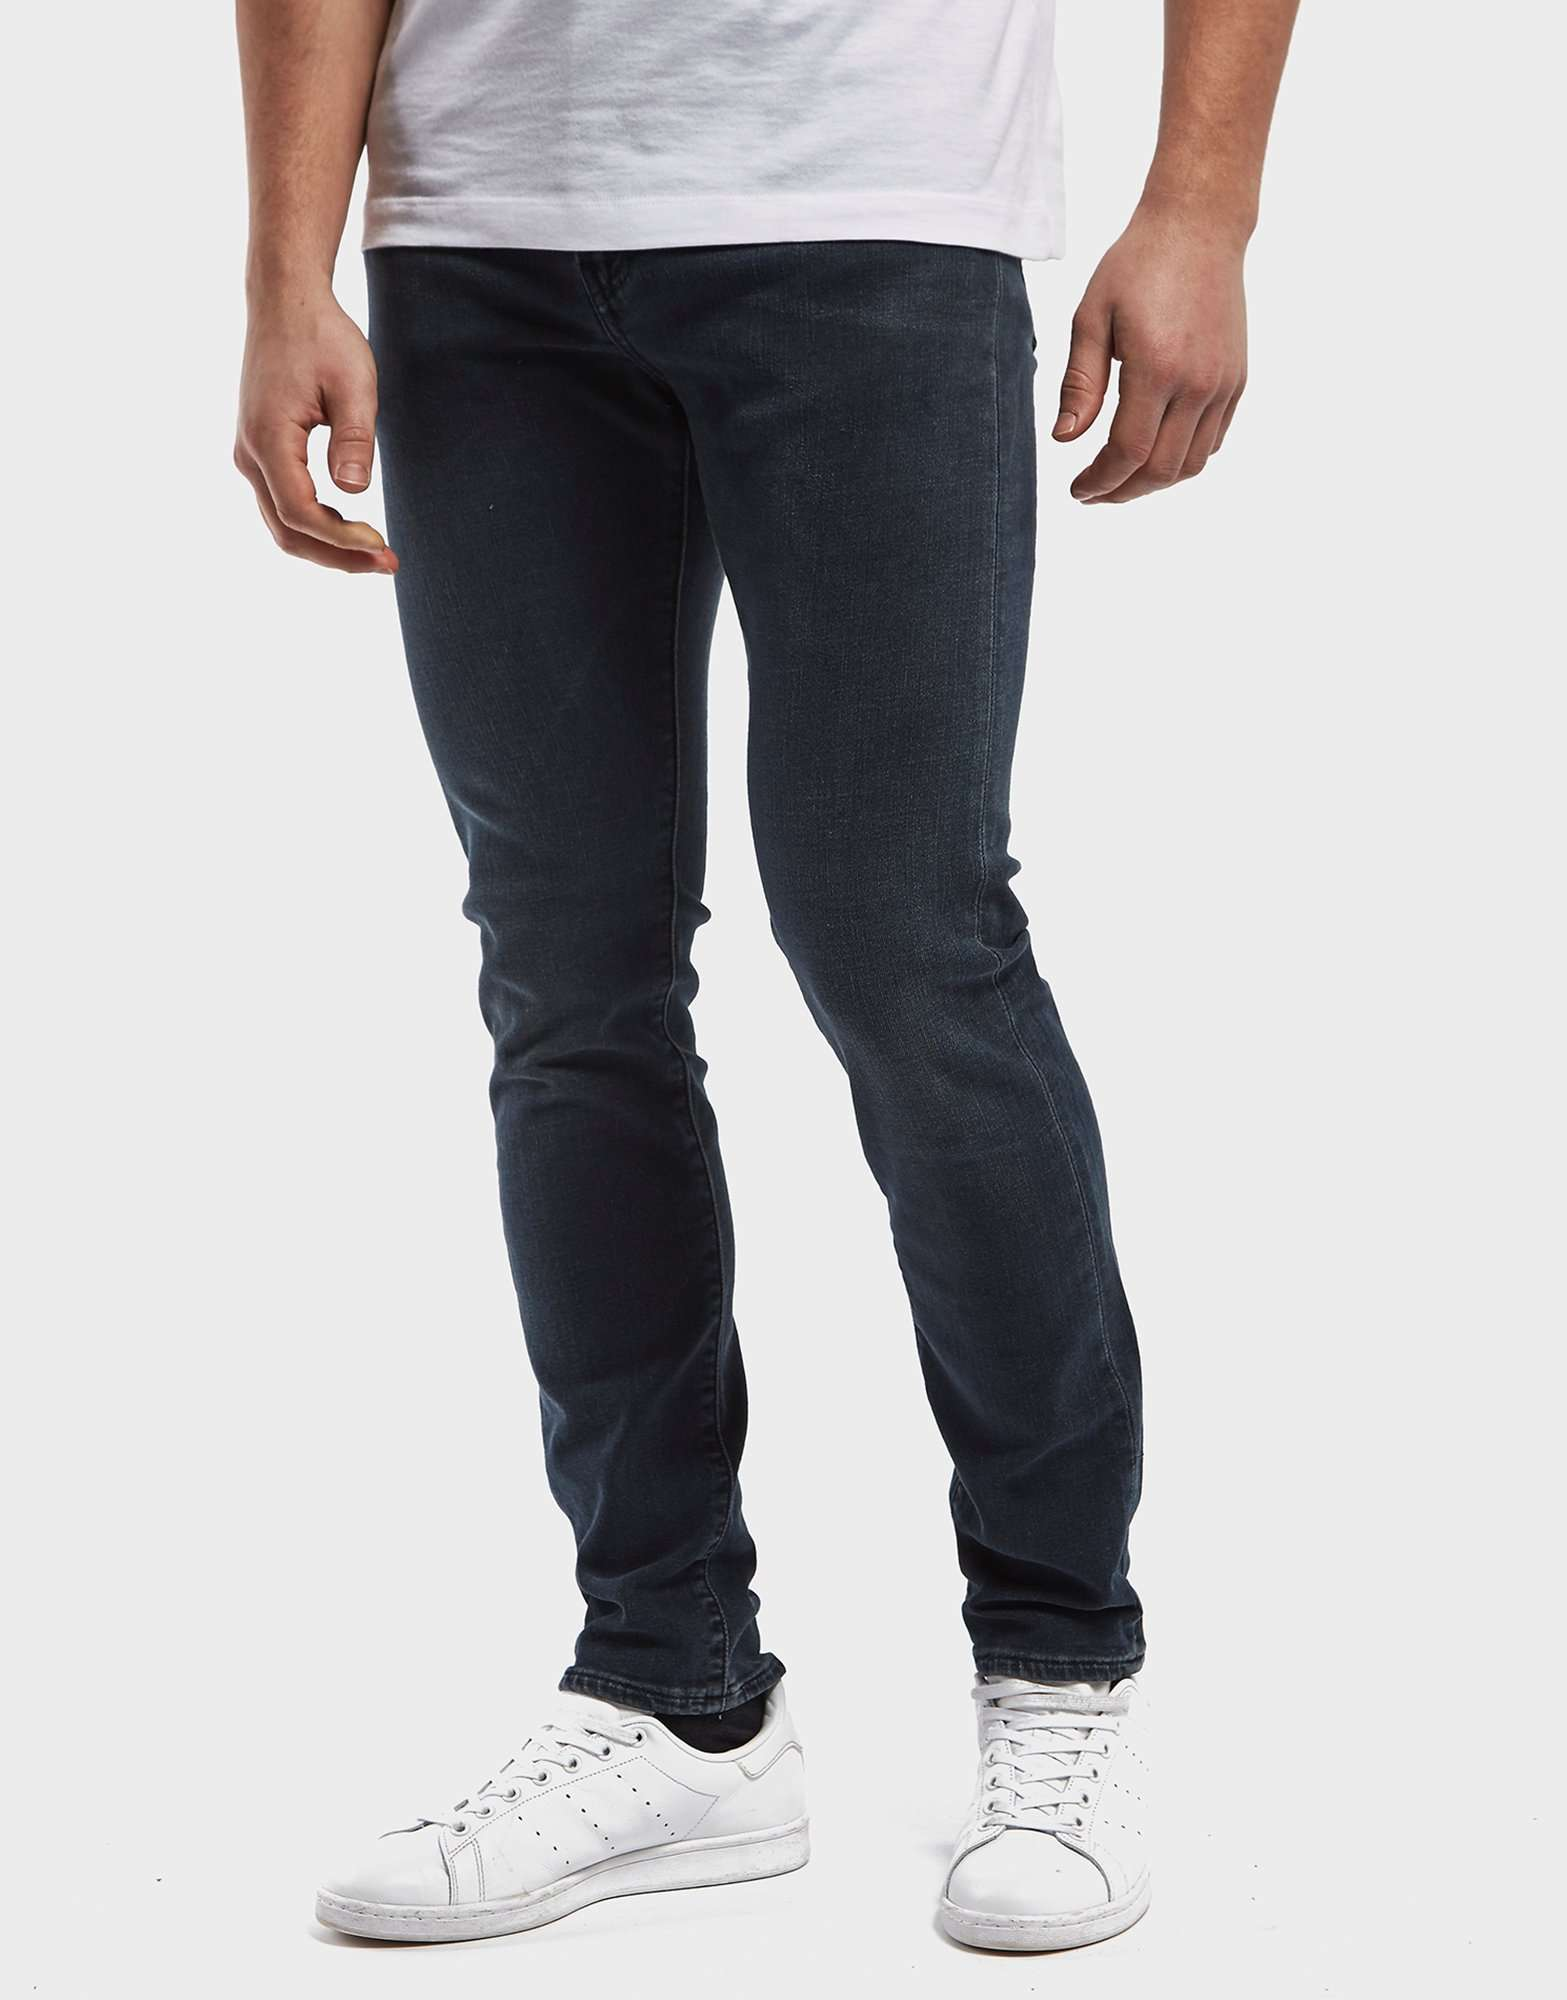 Levis 510 Skinny Jeans